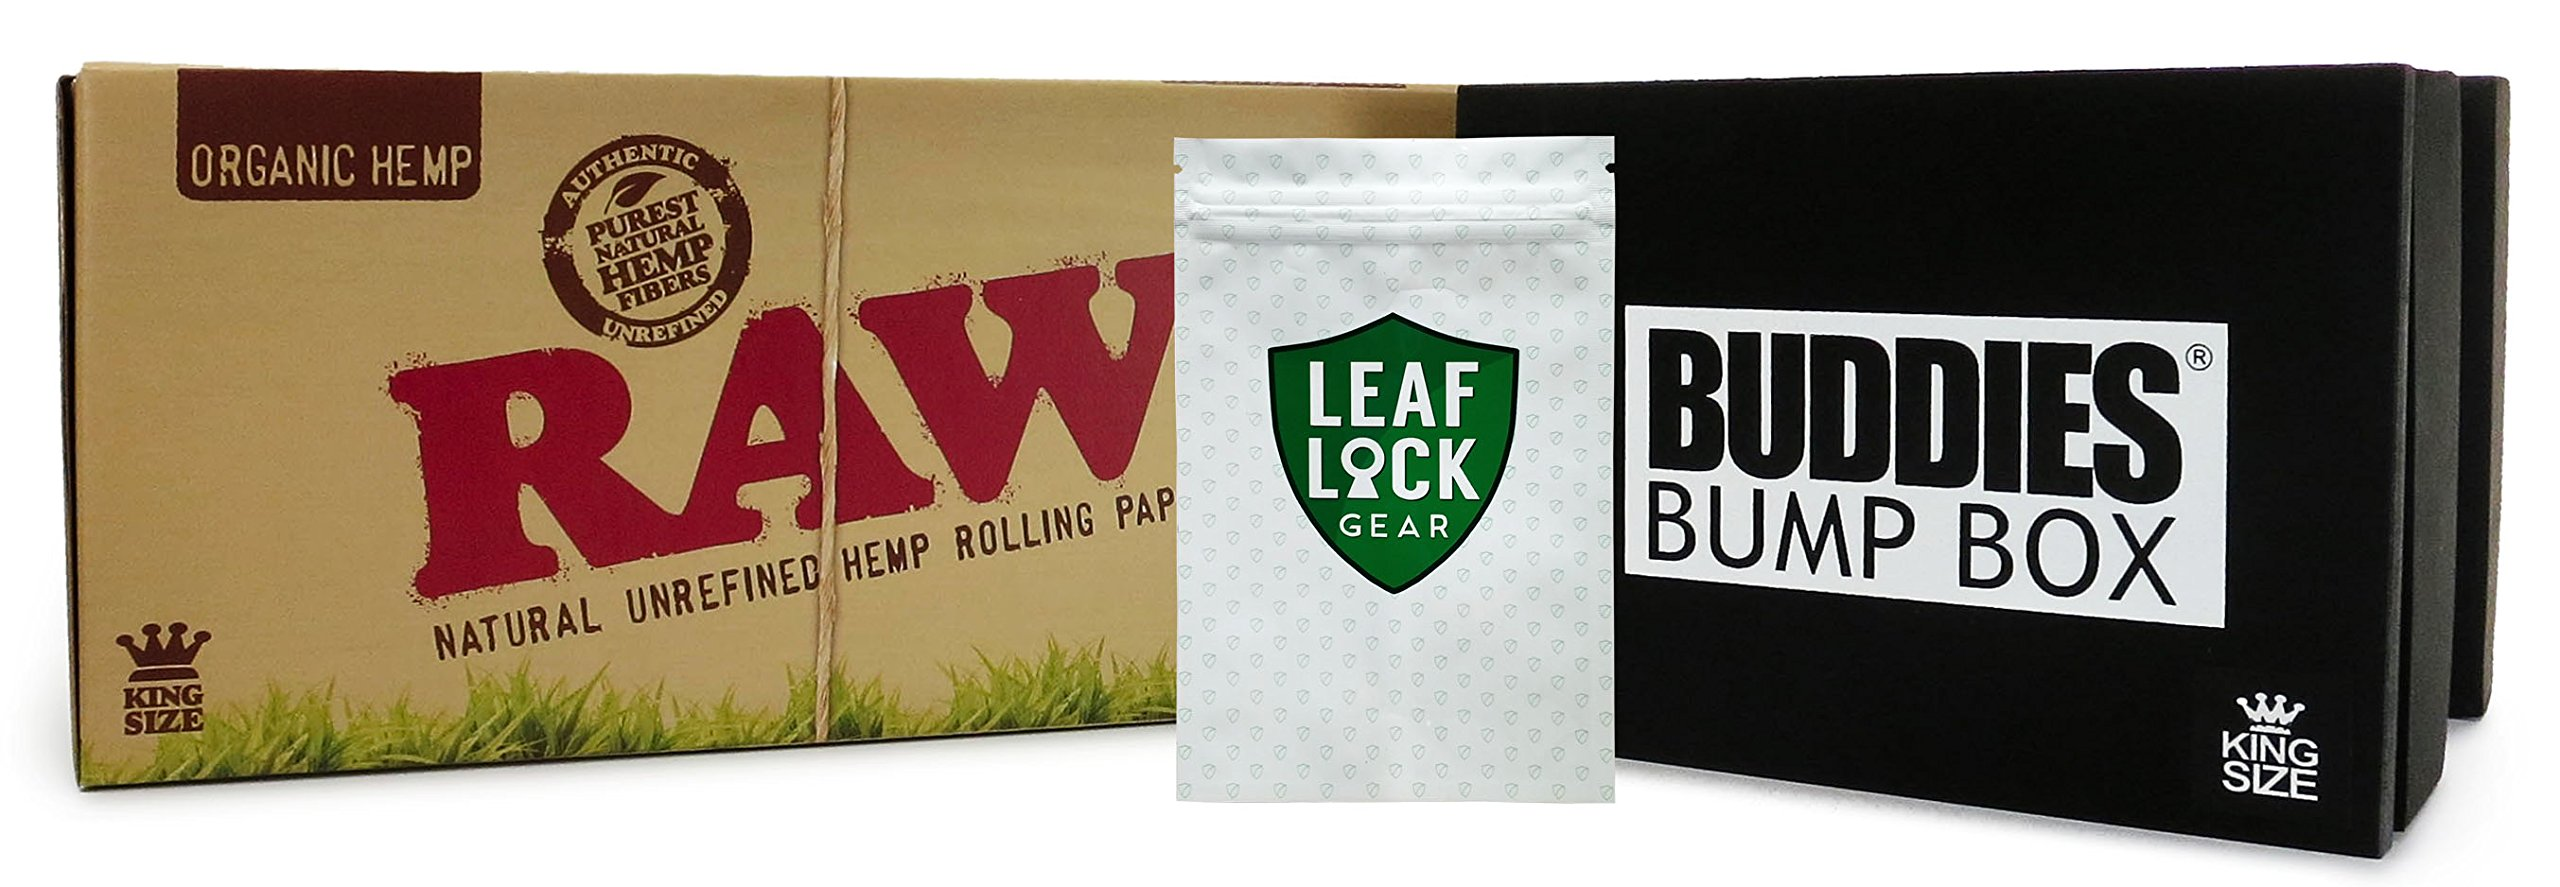 Bundle - 3 Items - RAW Organic King Size Pre-Rolled Cone 800 Pack (King Size), Buddies King Size Bump Box Cone Filler with Leaf Lock Gear Smell Proof Bag